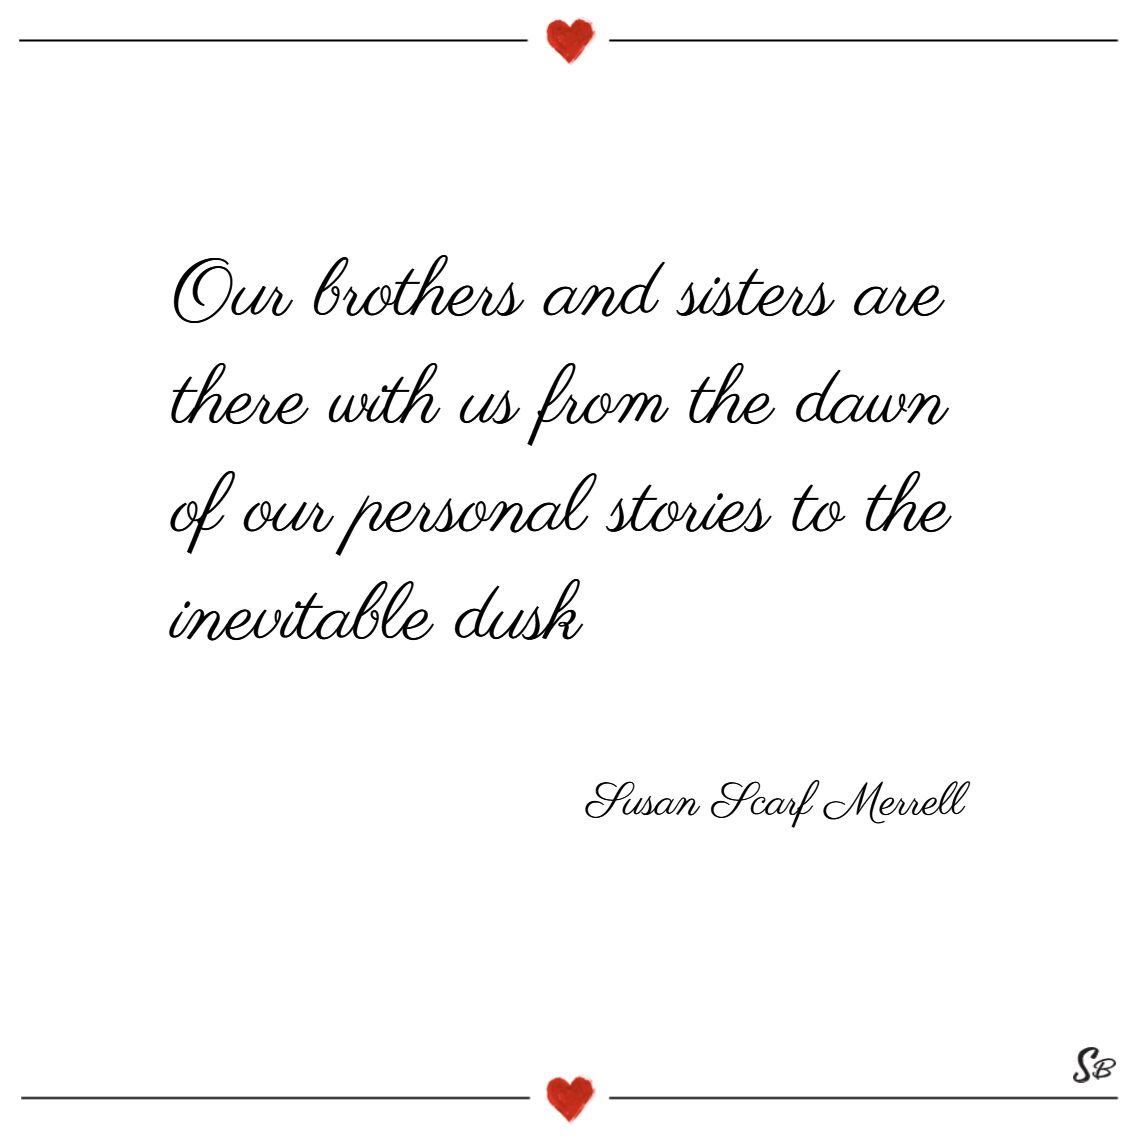 Our brothers and sisters are there with us from the dawn of our personal stories to the inevitable dusk. – susan scarf merrell